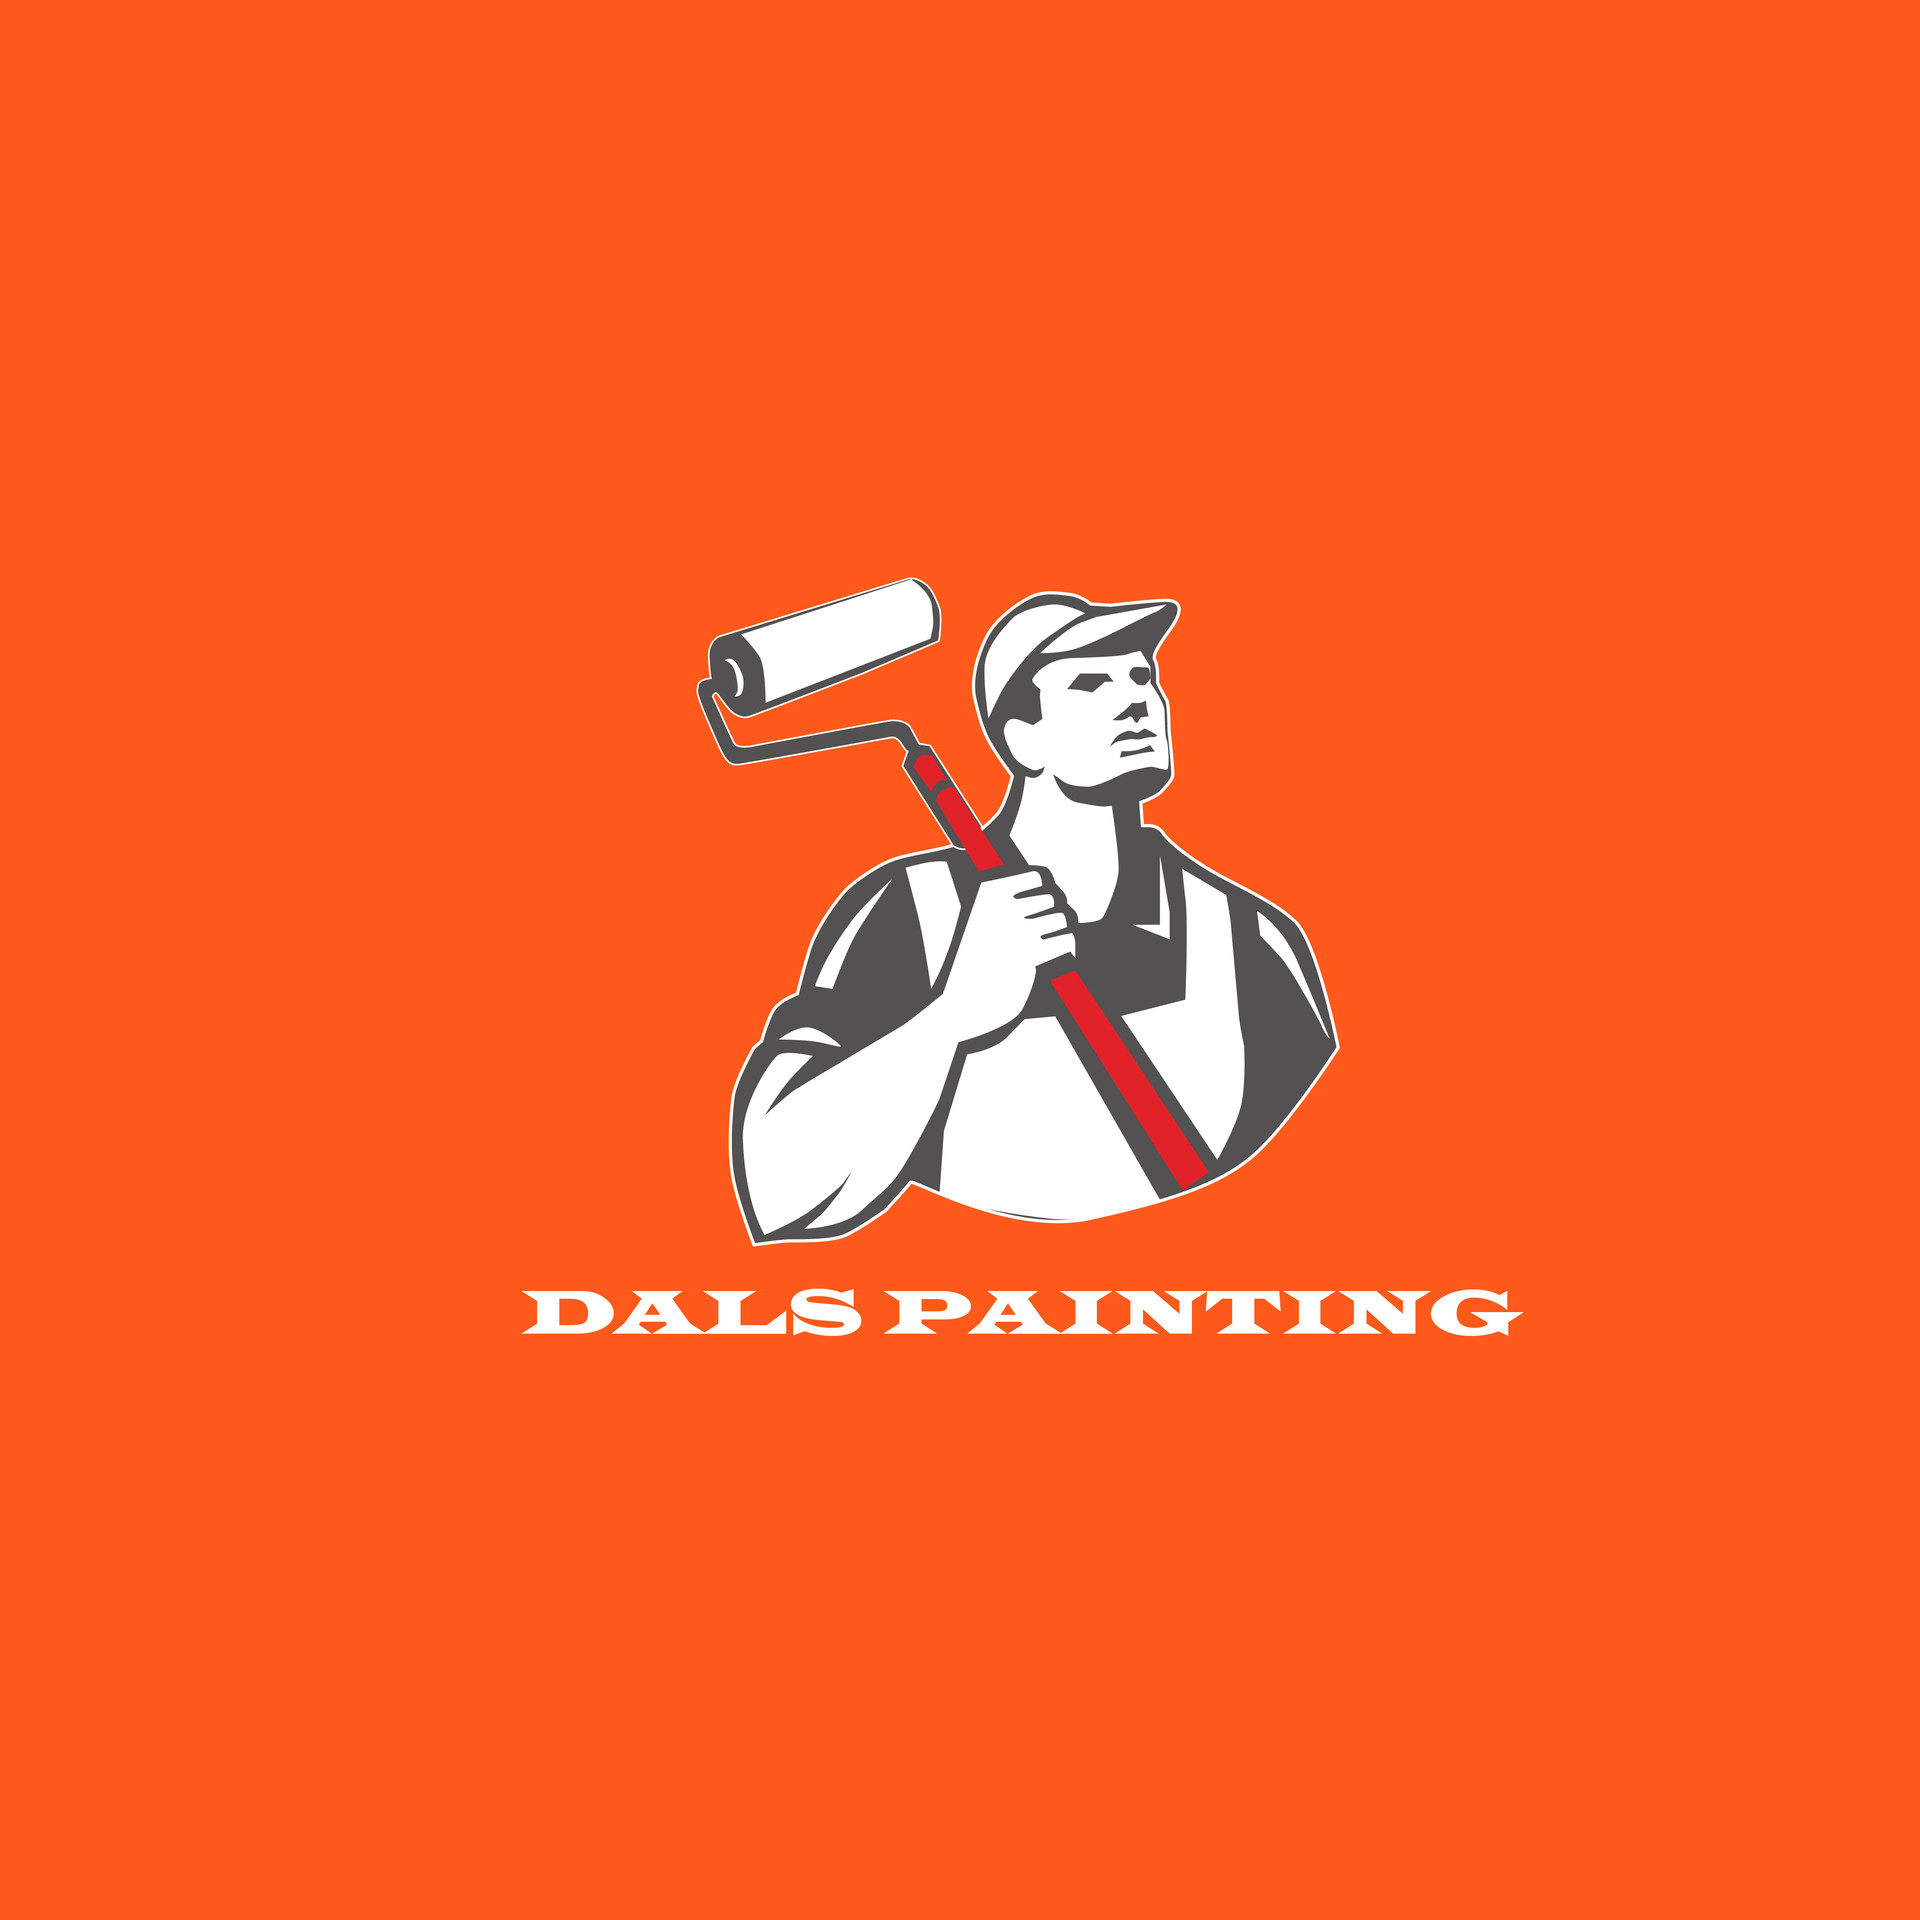 Dals Painting